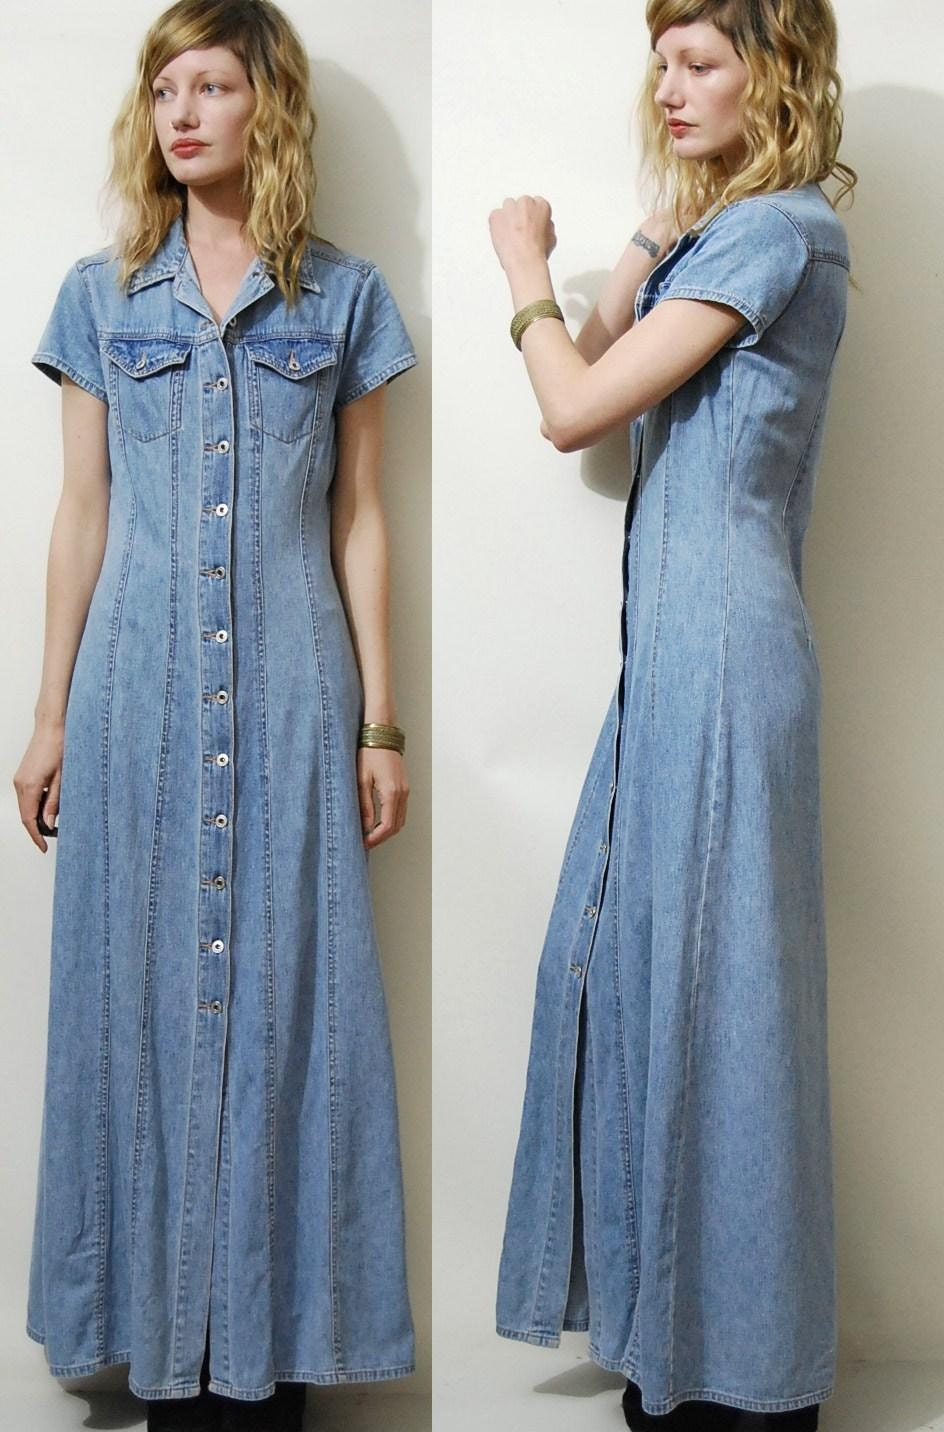 90s Vintage Denim Dress Maxi Long Button Down Vtg 1990s Pale